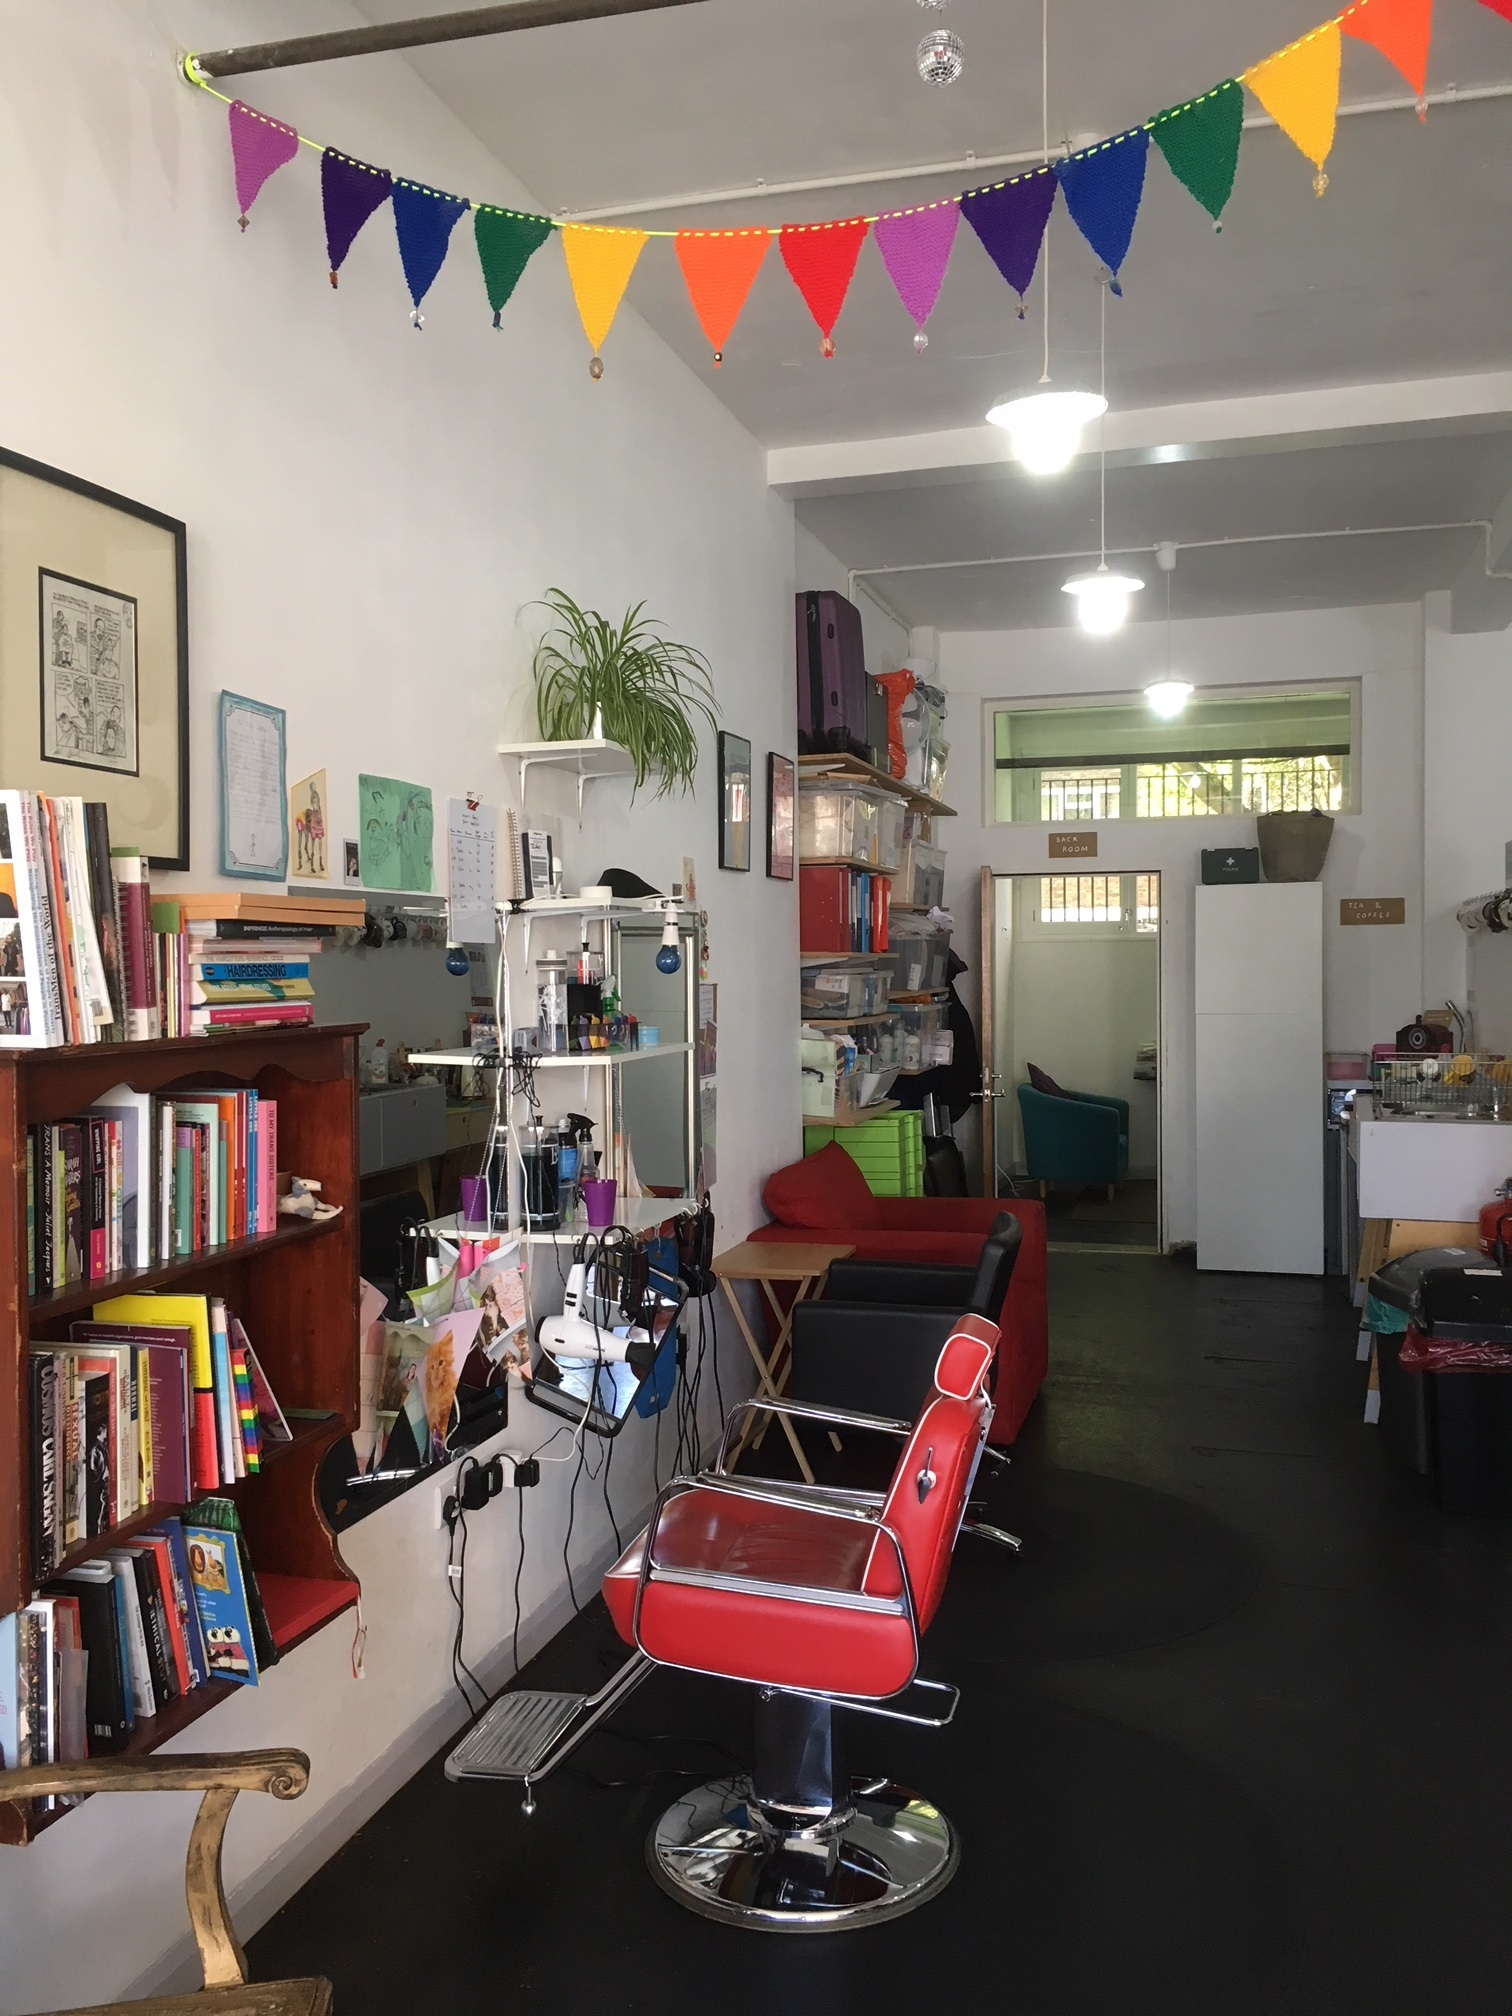 Photo of the inside of a barber shop, including a red barbers chair, rainbow flag garland, and a bookcase filled with books.